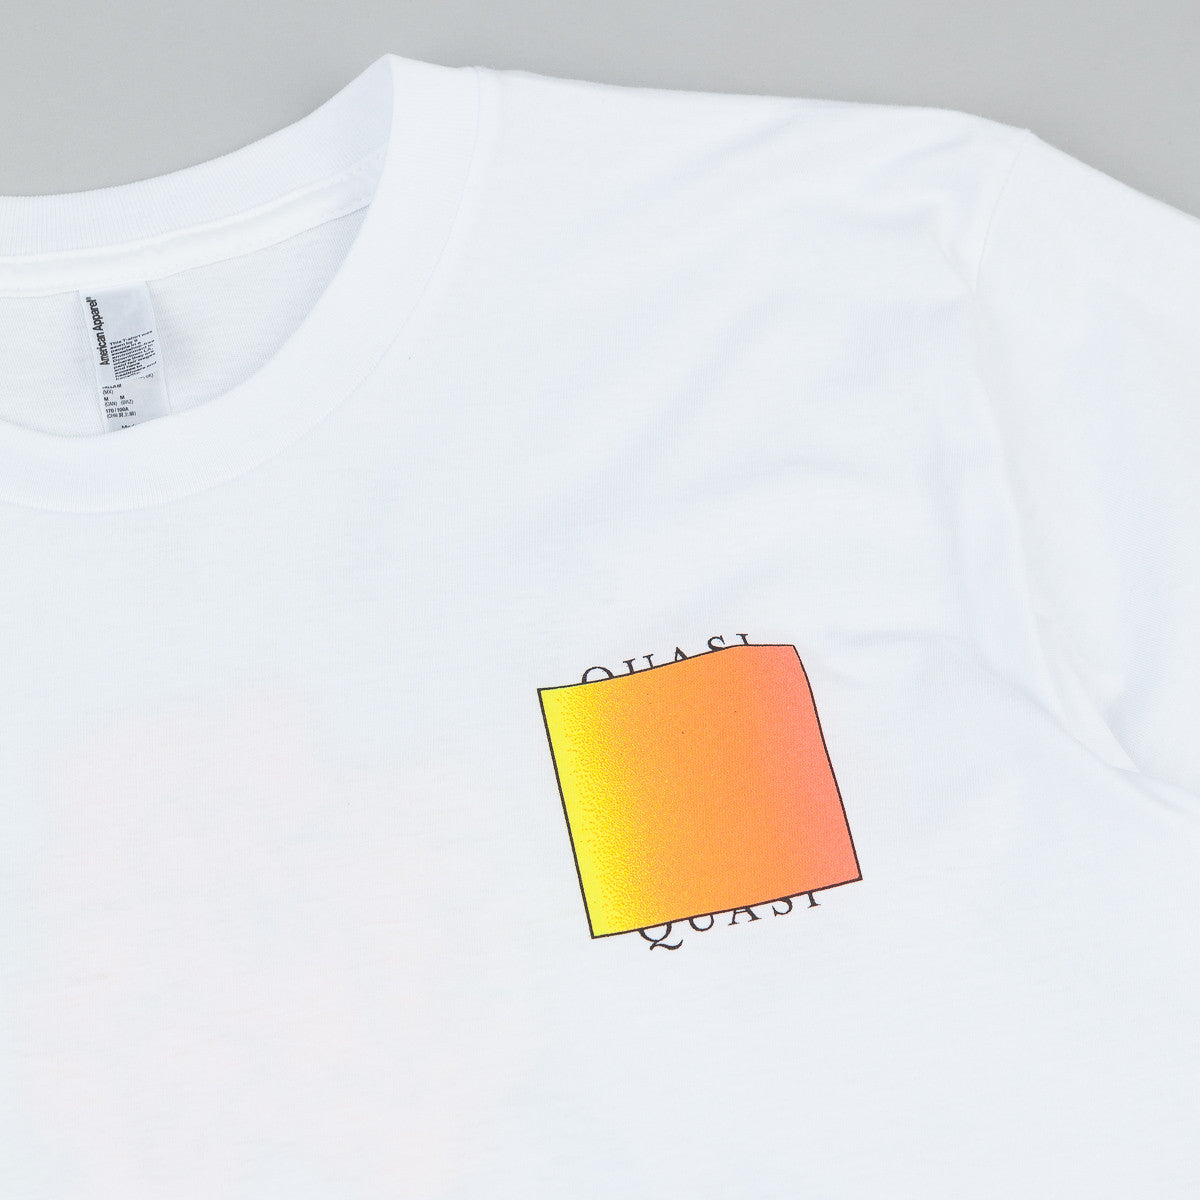 Quasi Skateboards Boogie T-Shirt - White